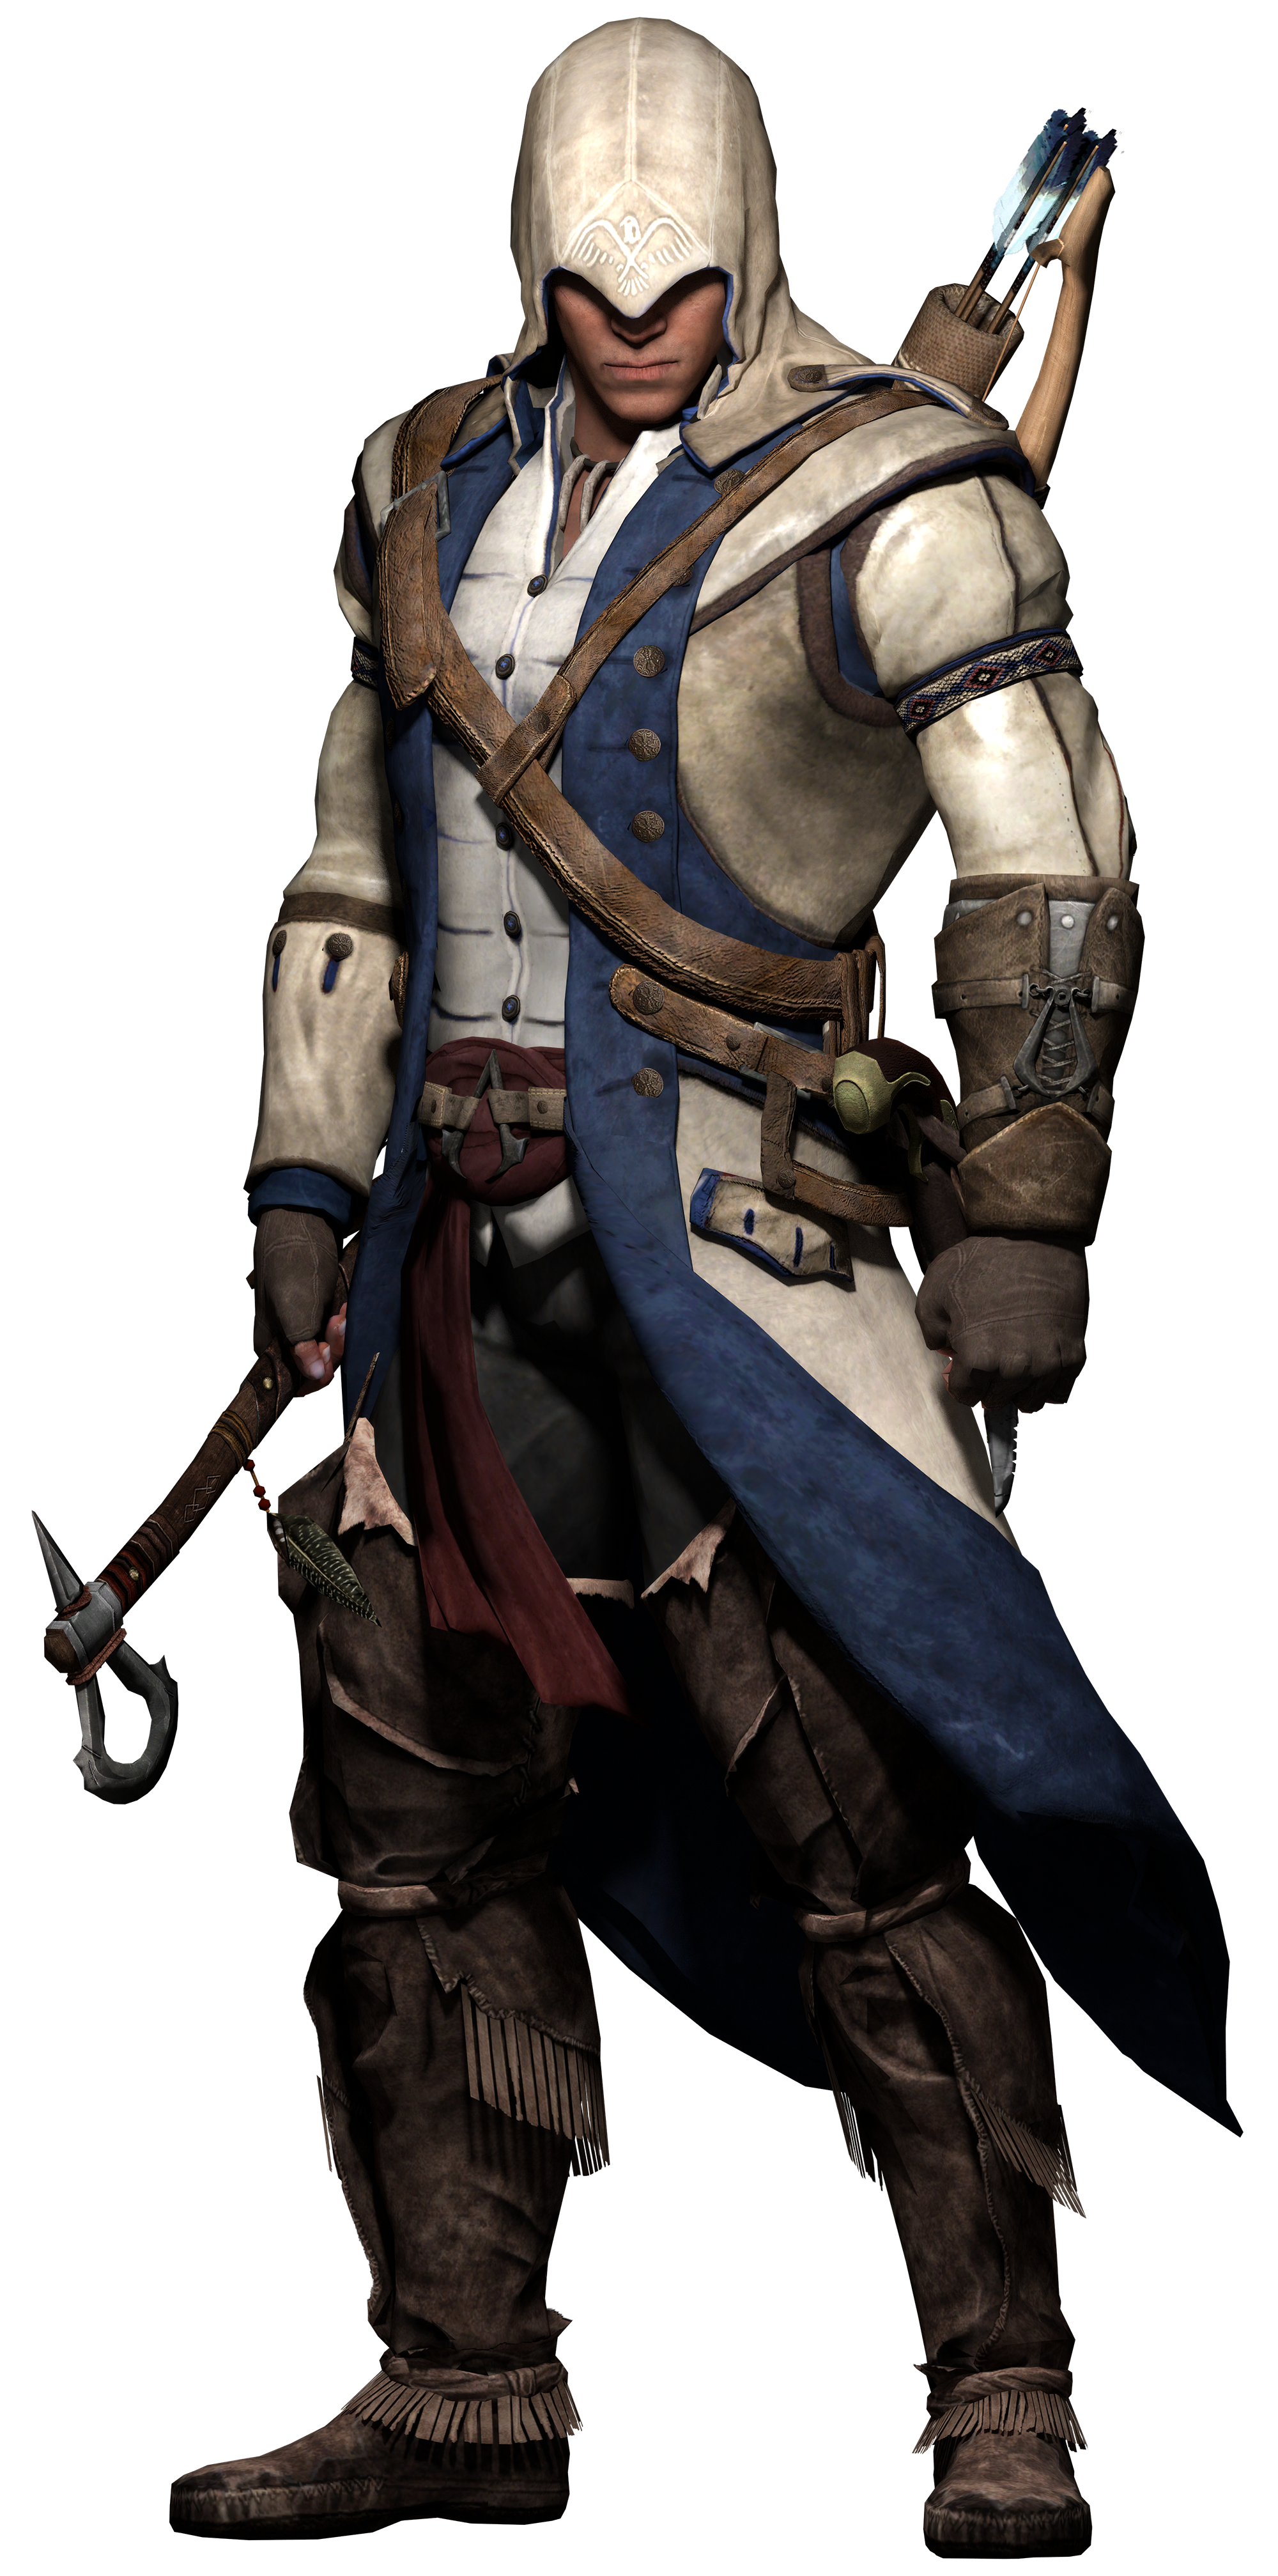 image ac3 connor renderpng assassins creed wiki